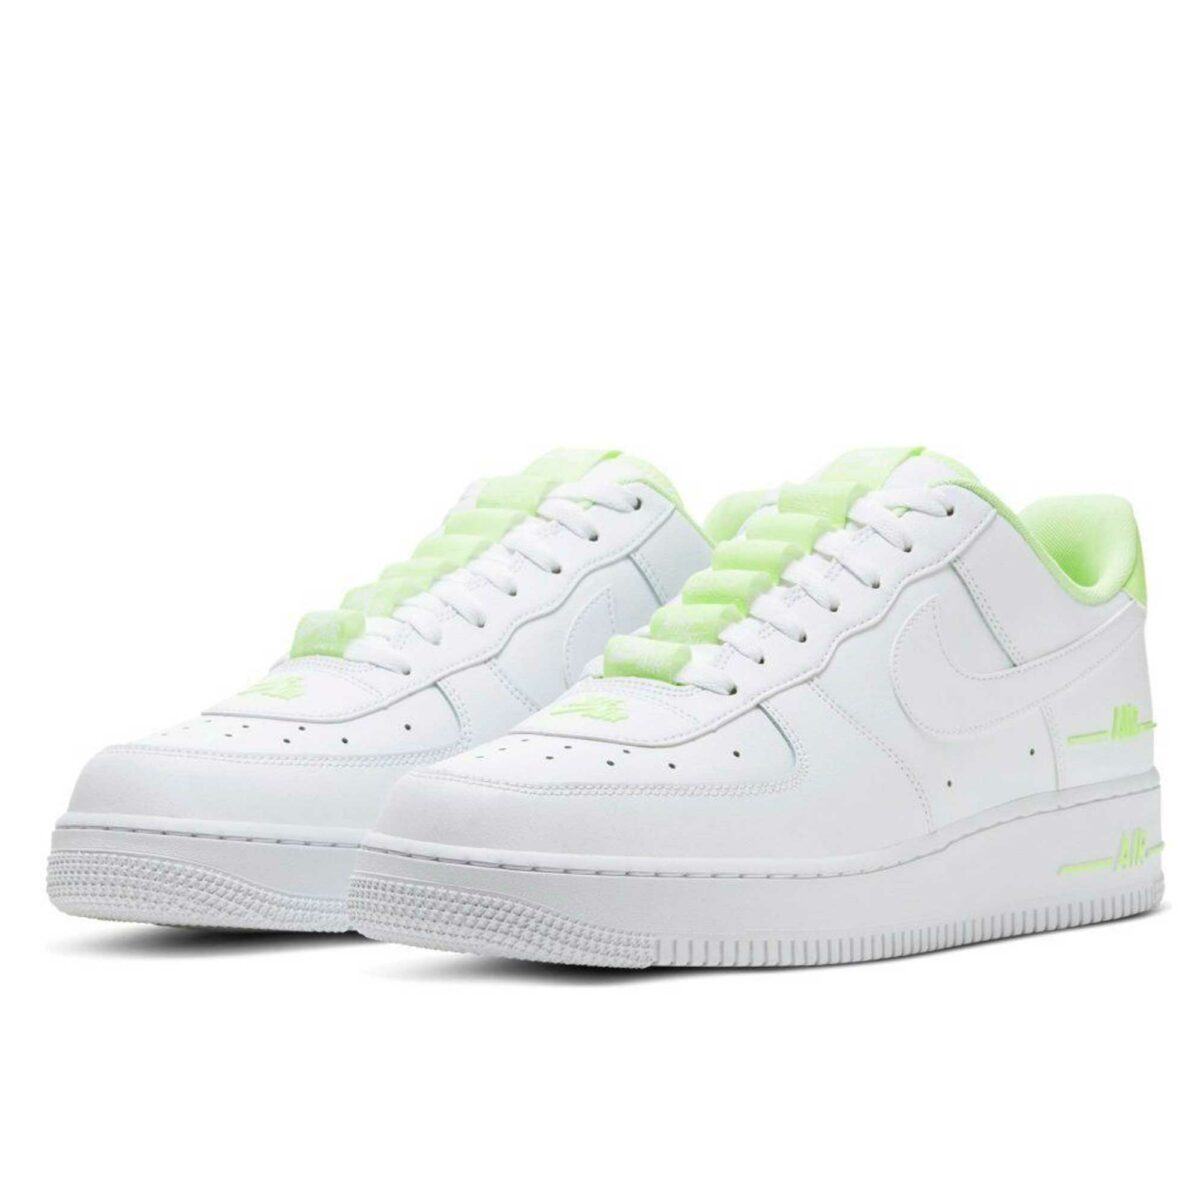 nike air force 1 07 lv8 3 white cj1379_101